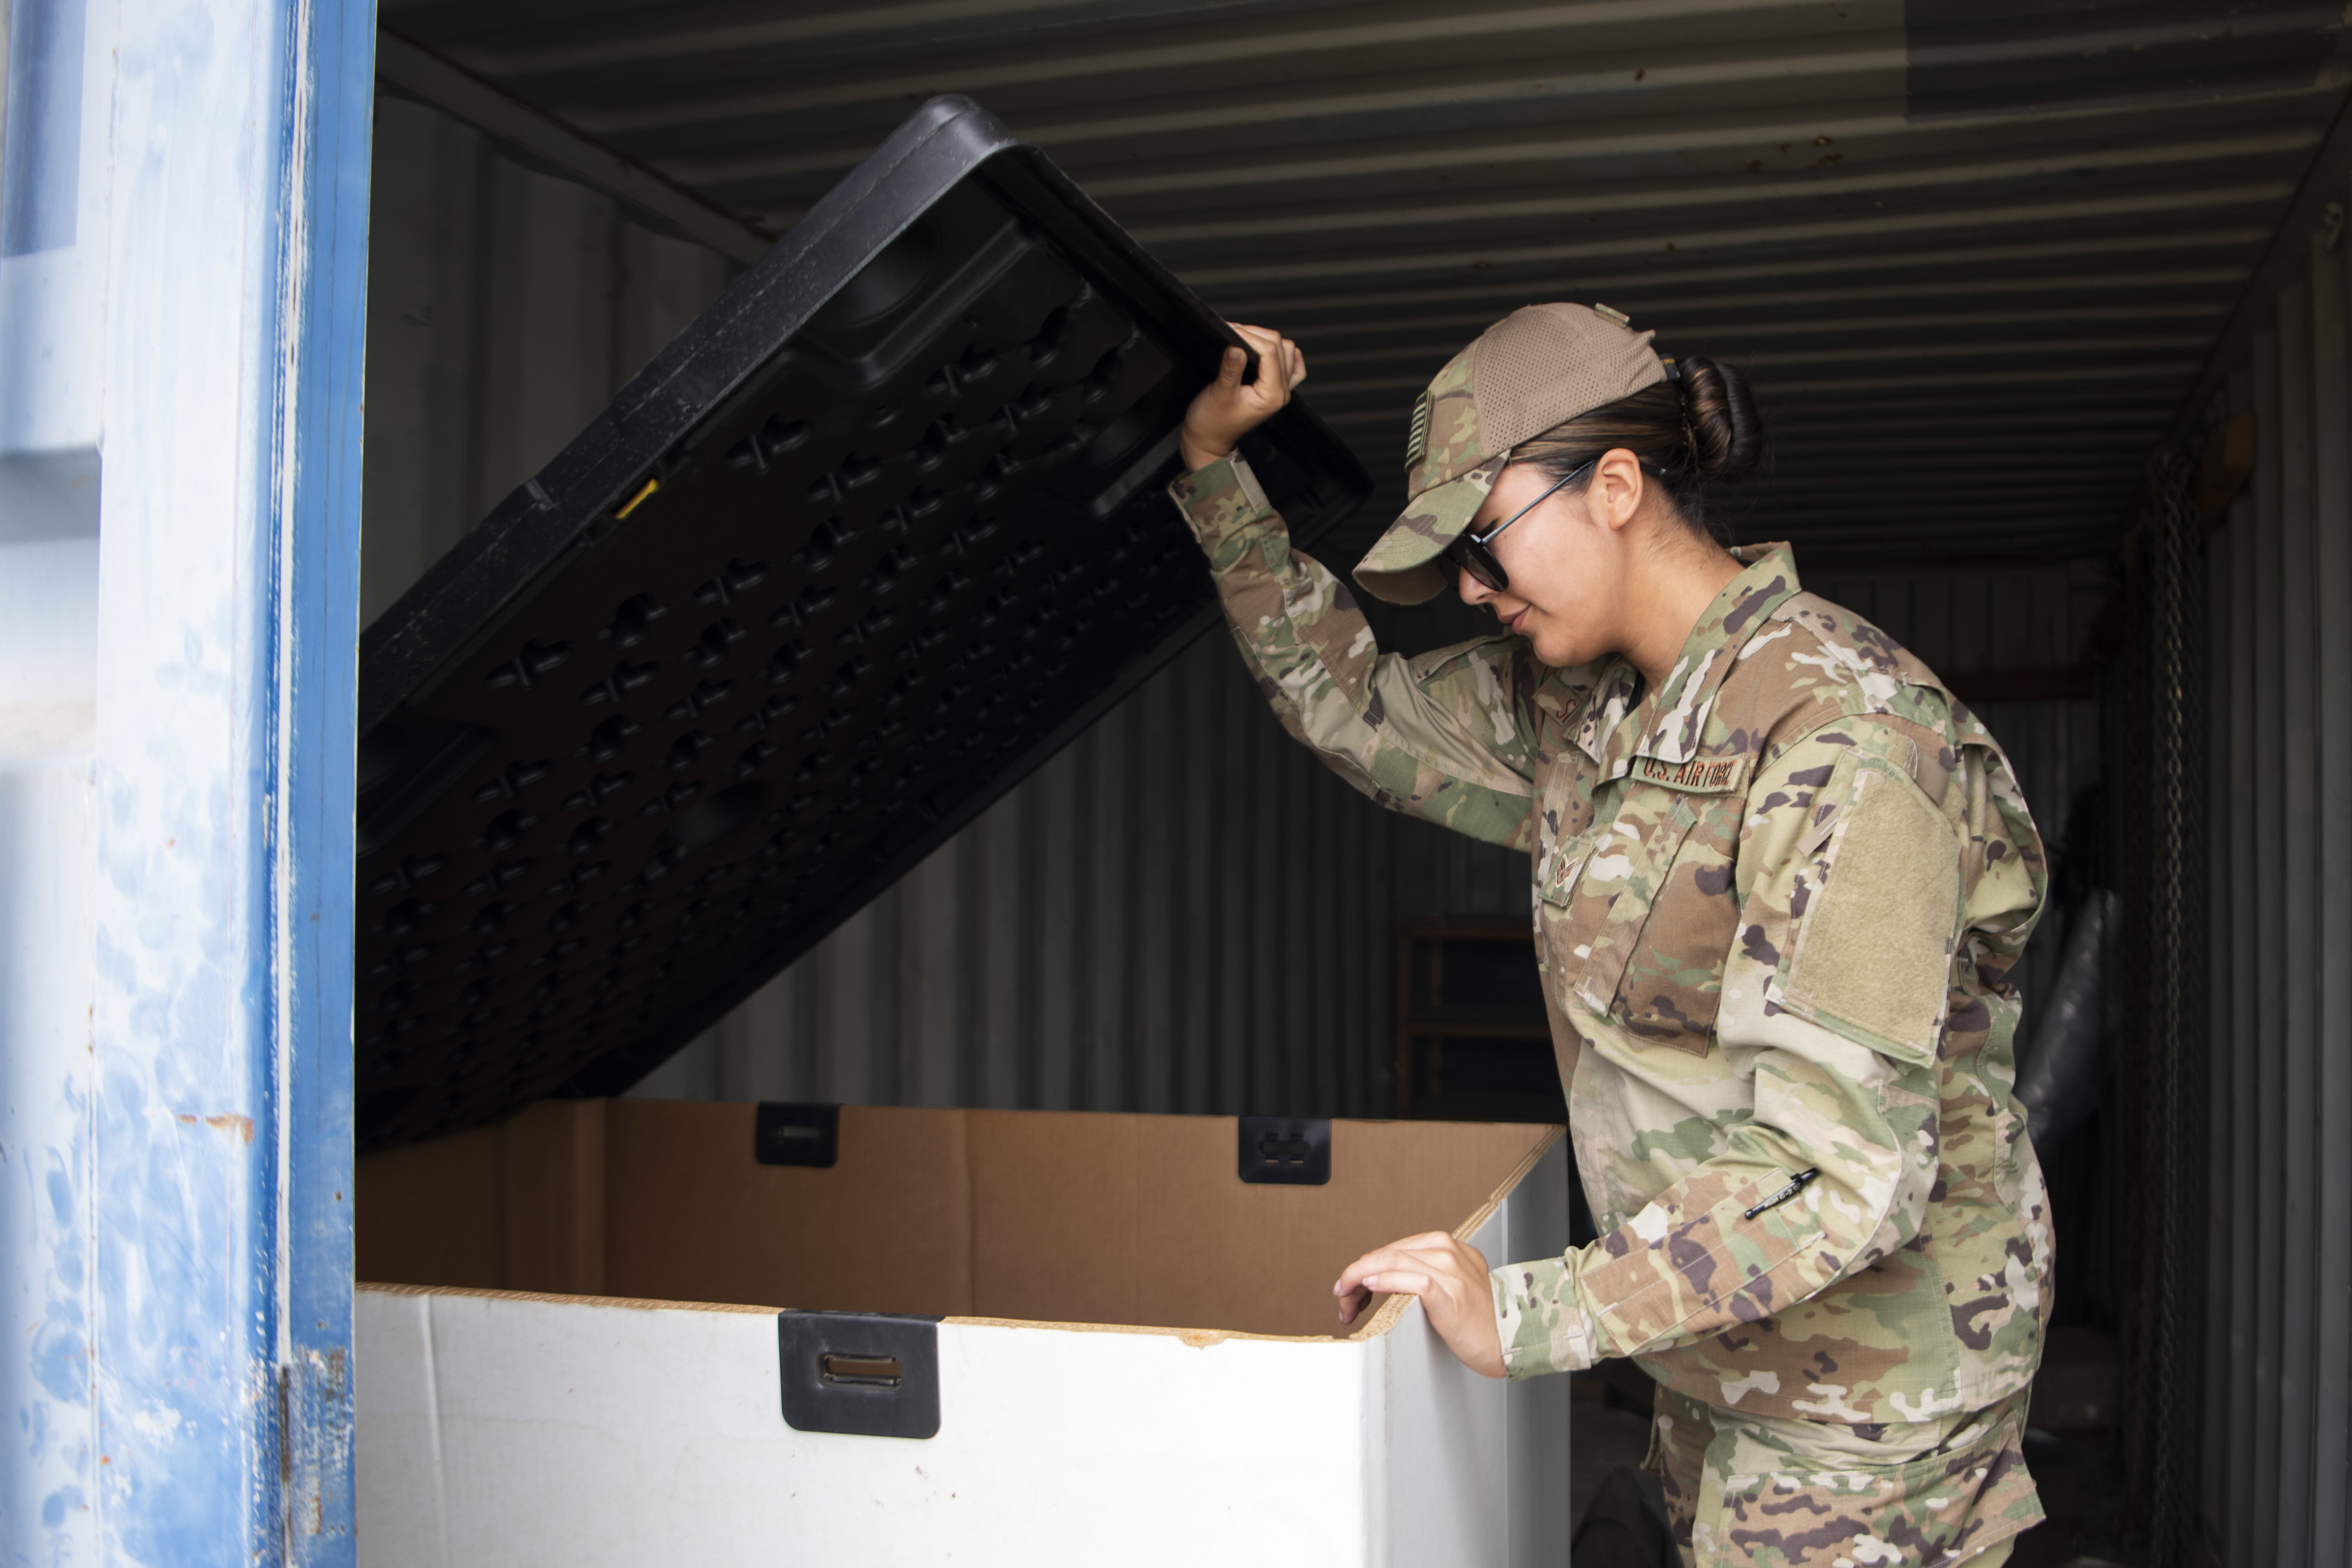 U.S. Air Force Staff Sgt. Andrea Setzler, air movements noncommissioned officer in charge, Combined Joint Task Force-Horn of Africa (CJTF-HOA), inspects a transportation equipment container at Camp Lemonnier, Djibouti, Feb. 4, 2020. Setzler manages the first step in transporting cargo throughout the CJTF-HOA area of operations, ensuring U.S. forces in the region have the supplies needed to maintain stability in East Africa.  (U.S. Air Force photo by Senior Airman Gage Daniel)